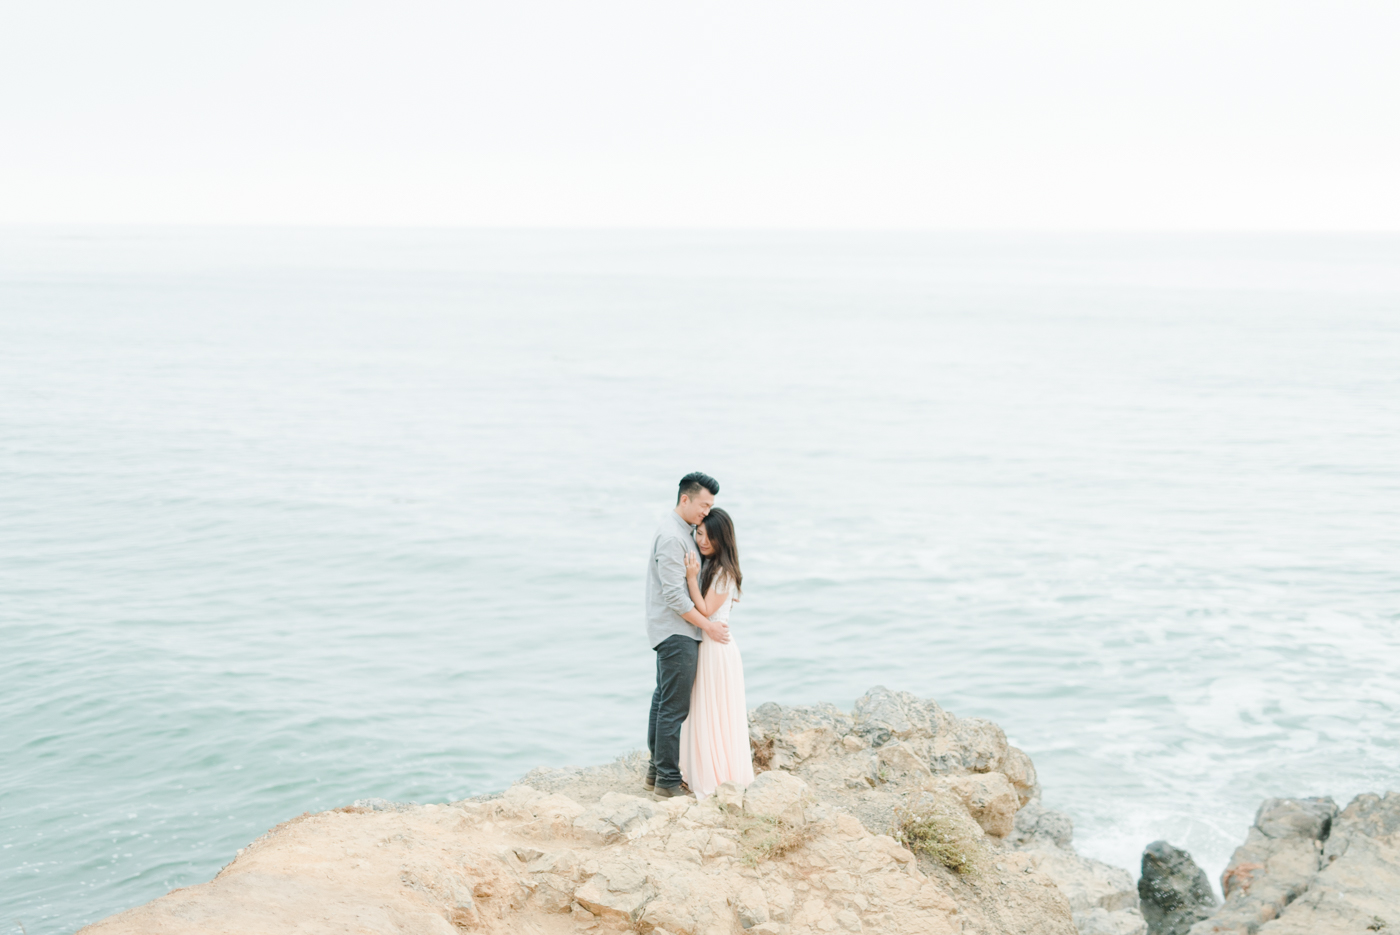 Palos_Verdes_Beach_Engagement_Session_Los_Angles_Fine_Art_Wedding_Photographer-15.jpg